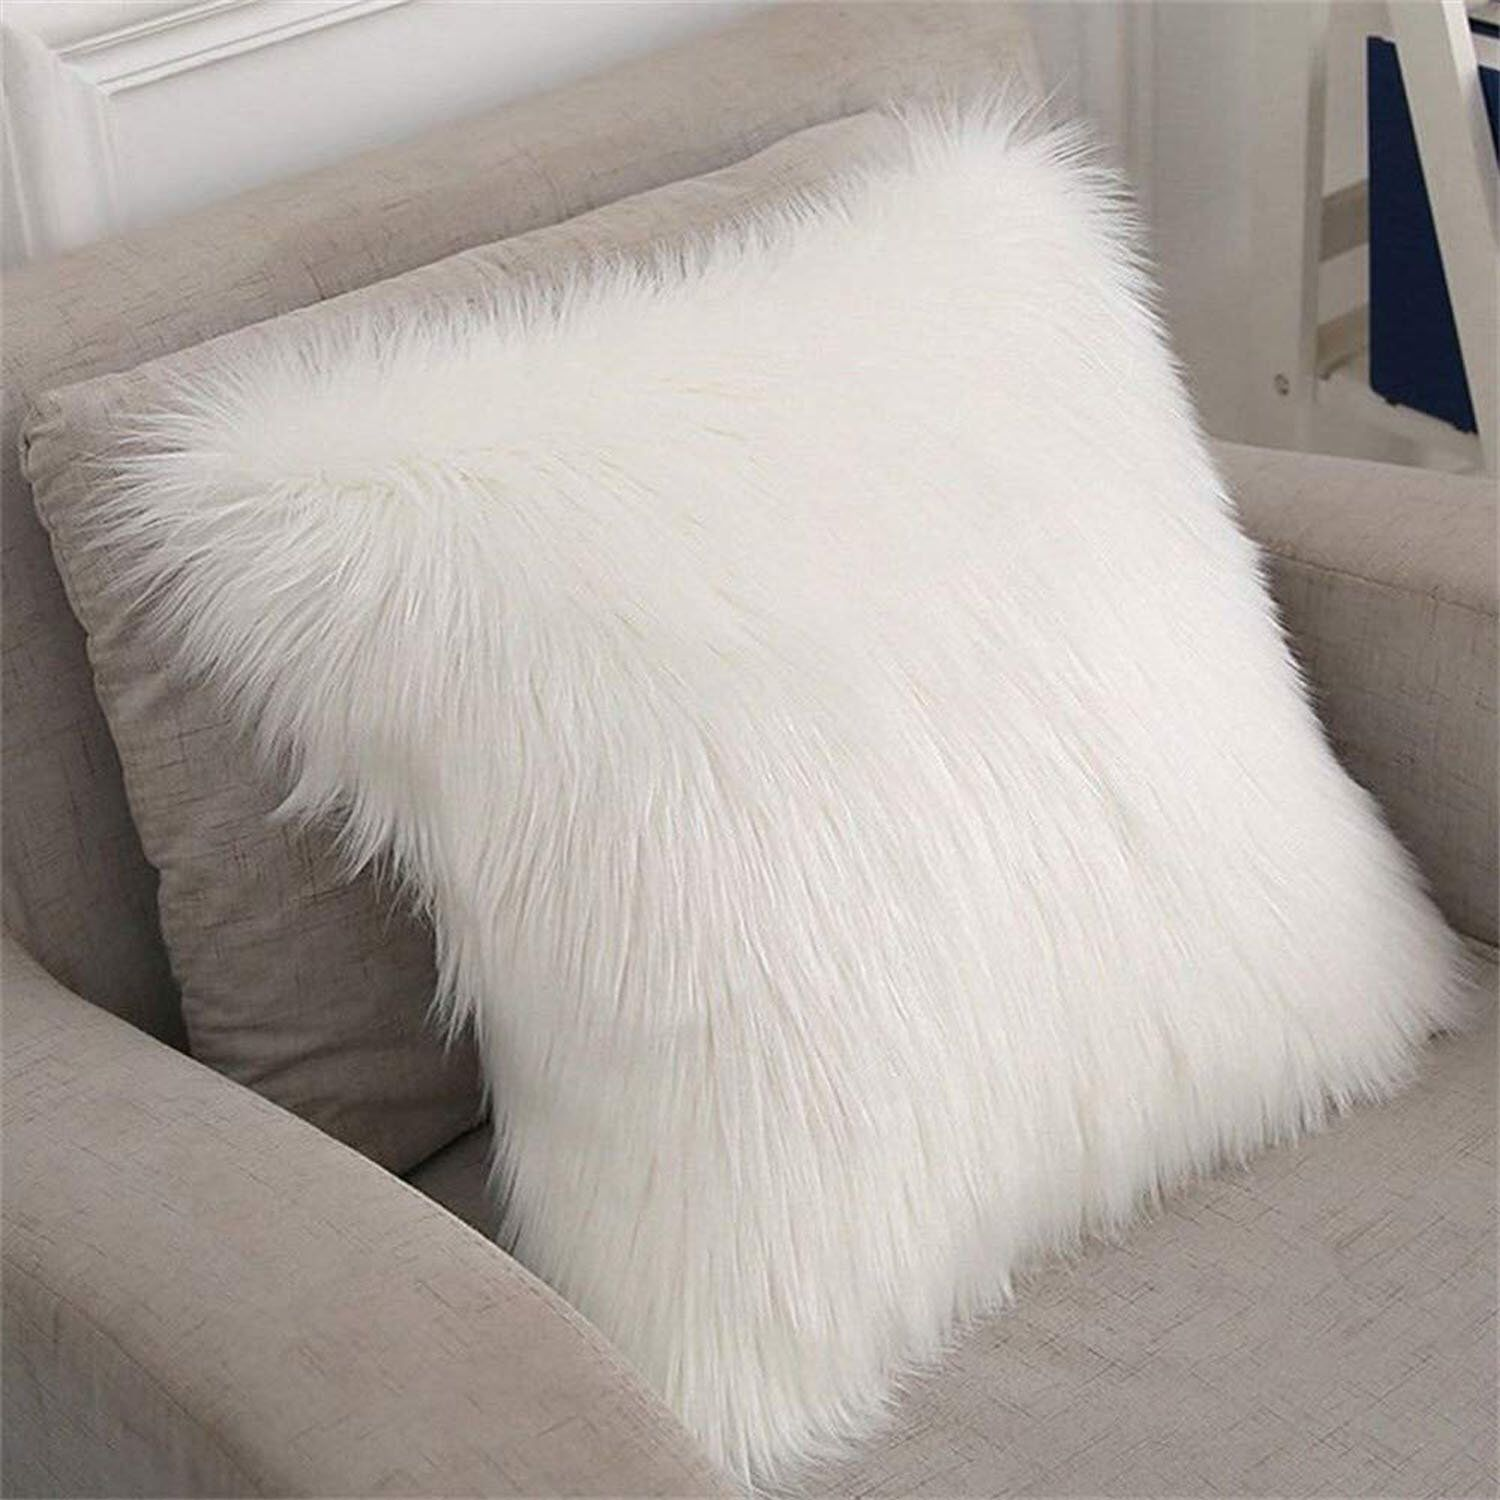 Super Faux Sheepskin Cushion Home Decor Pillow With Sheepskin Pillow Cover Sofa Wool Hairy Cushion Sofa Throw Cushion Artificial Sheepskin Chambre Decoration Coussin Decoration